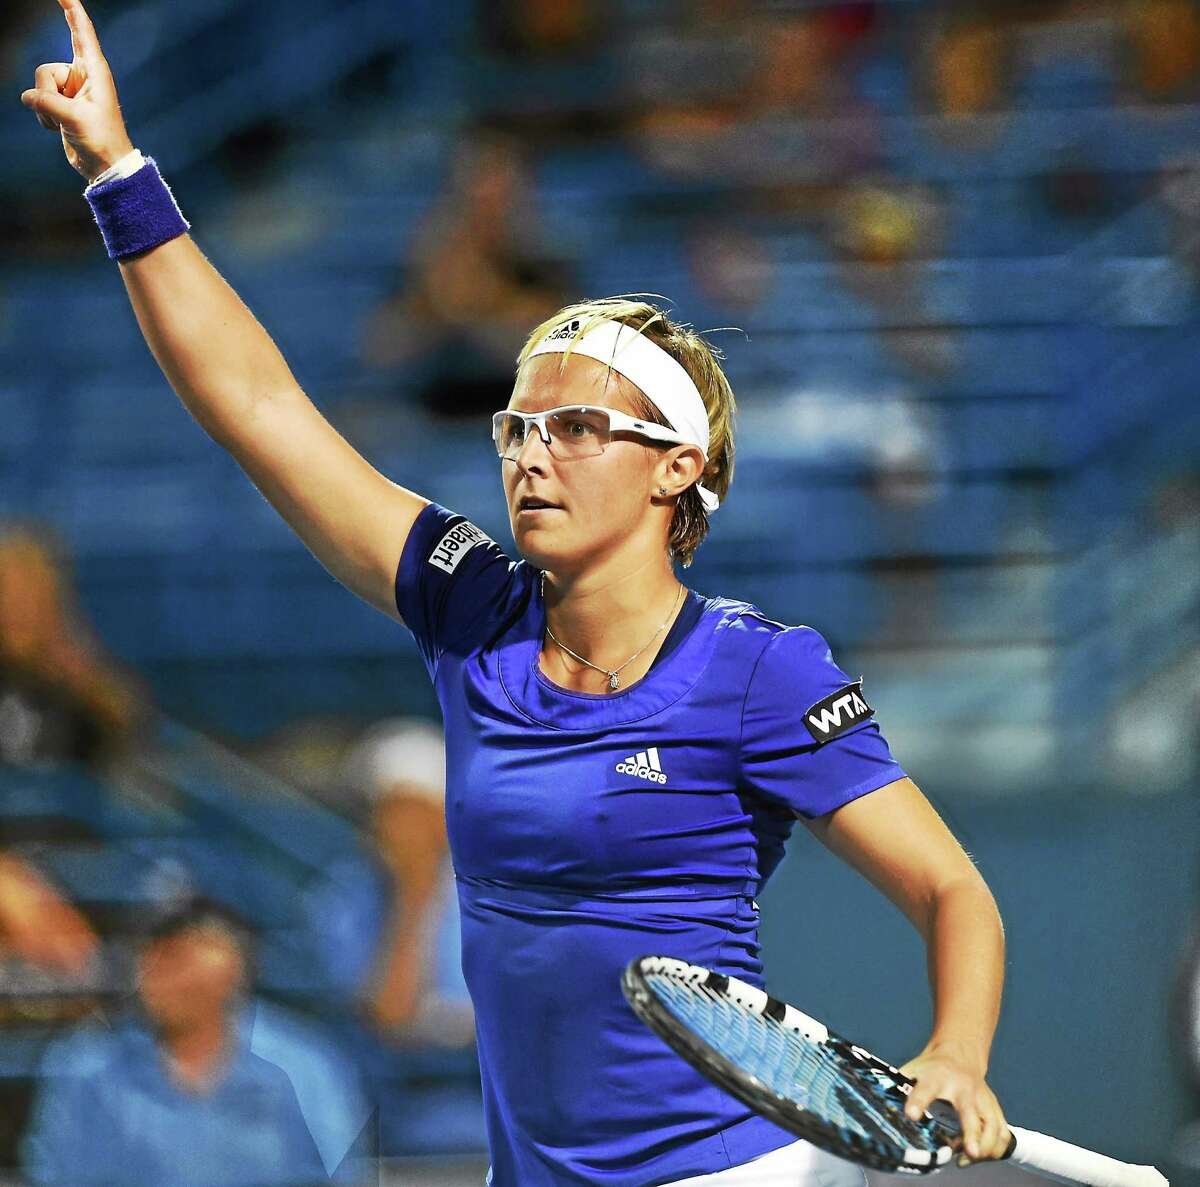 Kirstin Flipkens reacts to winning her maraton match against Andrea Petkovic at the Connecticut Open on Wednesday.